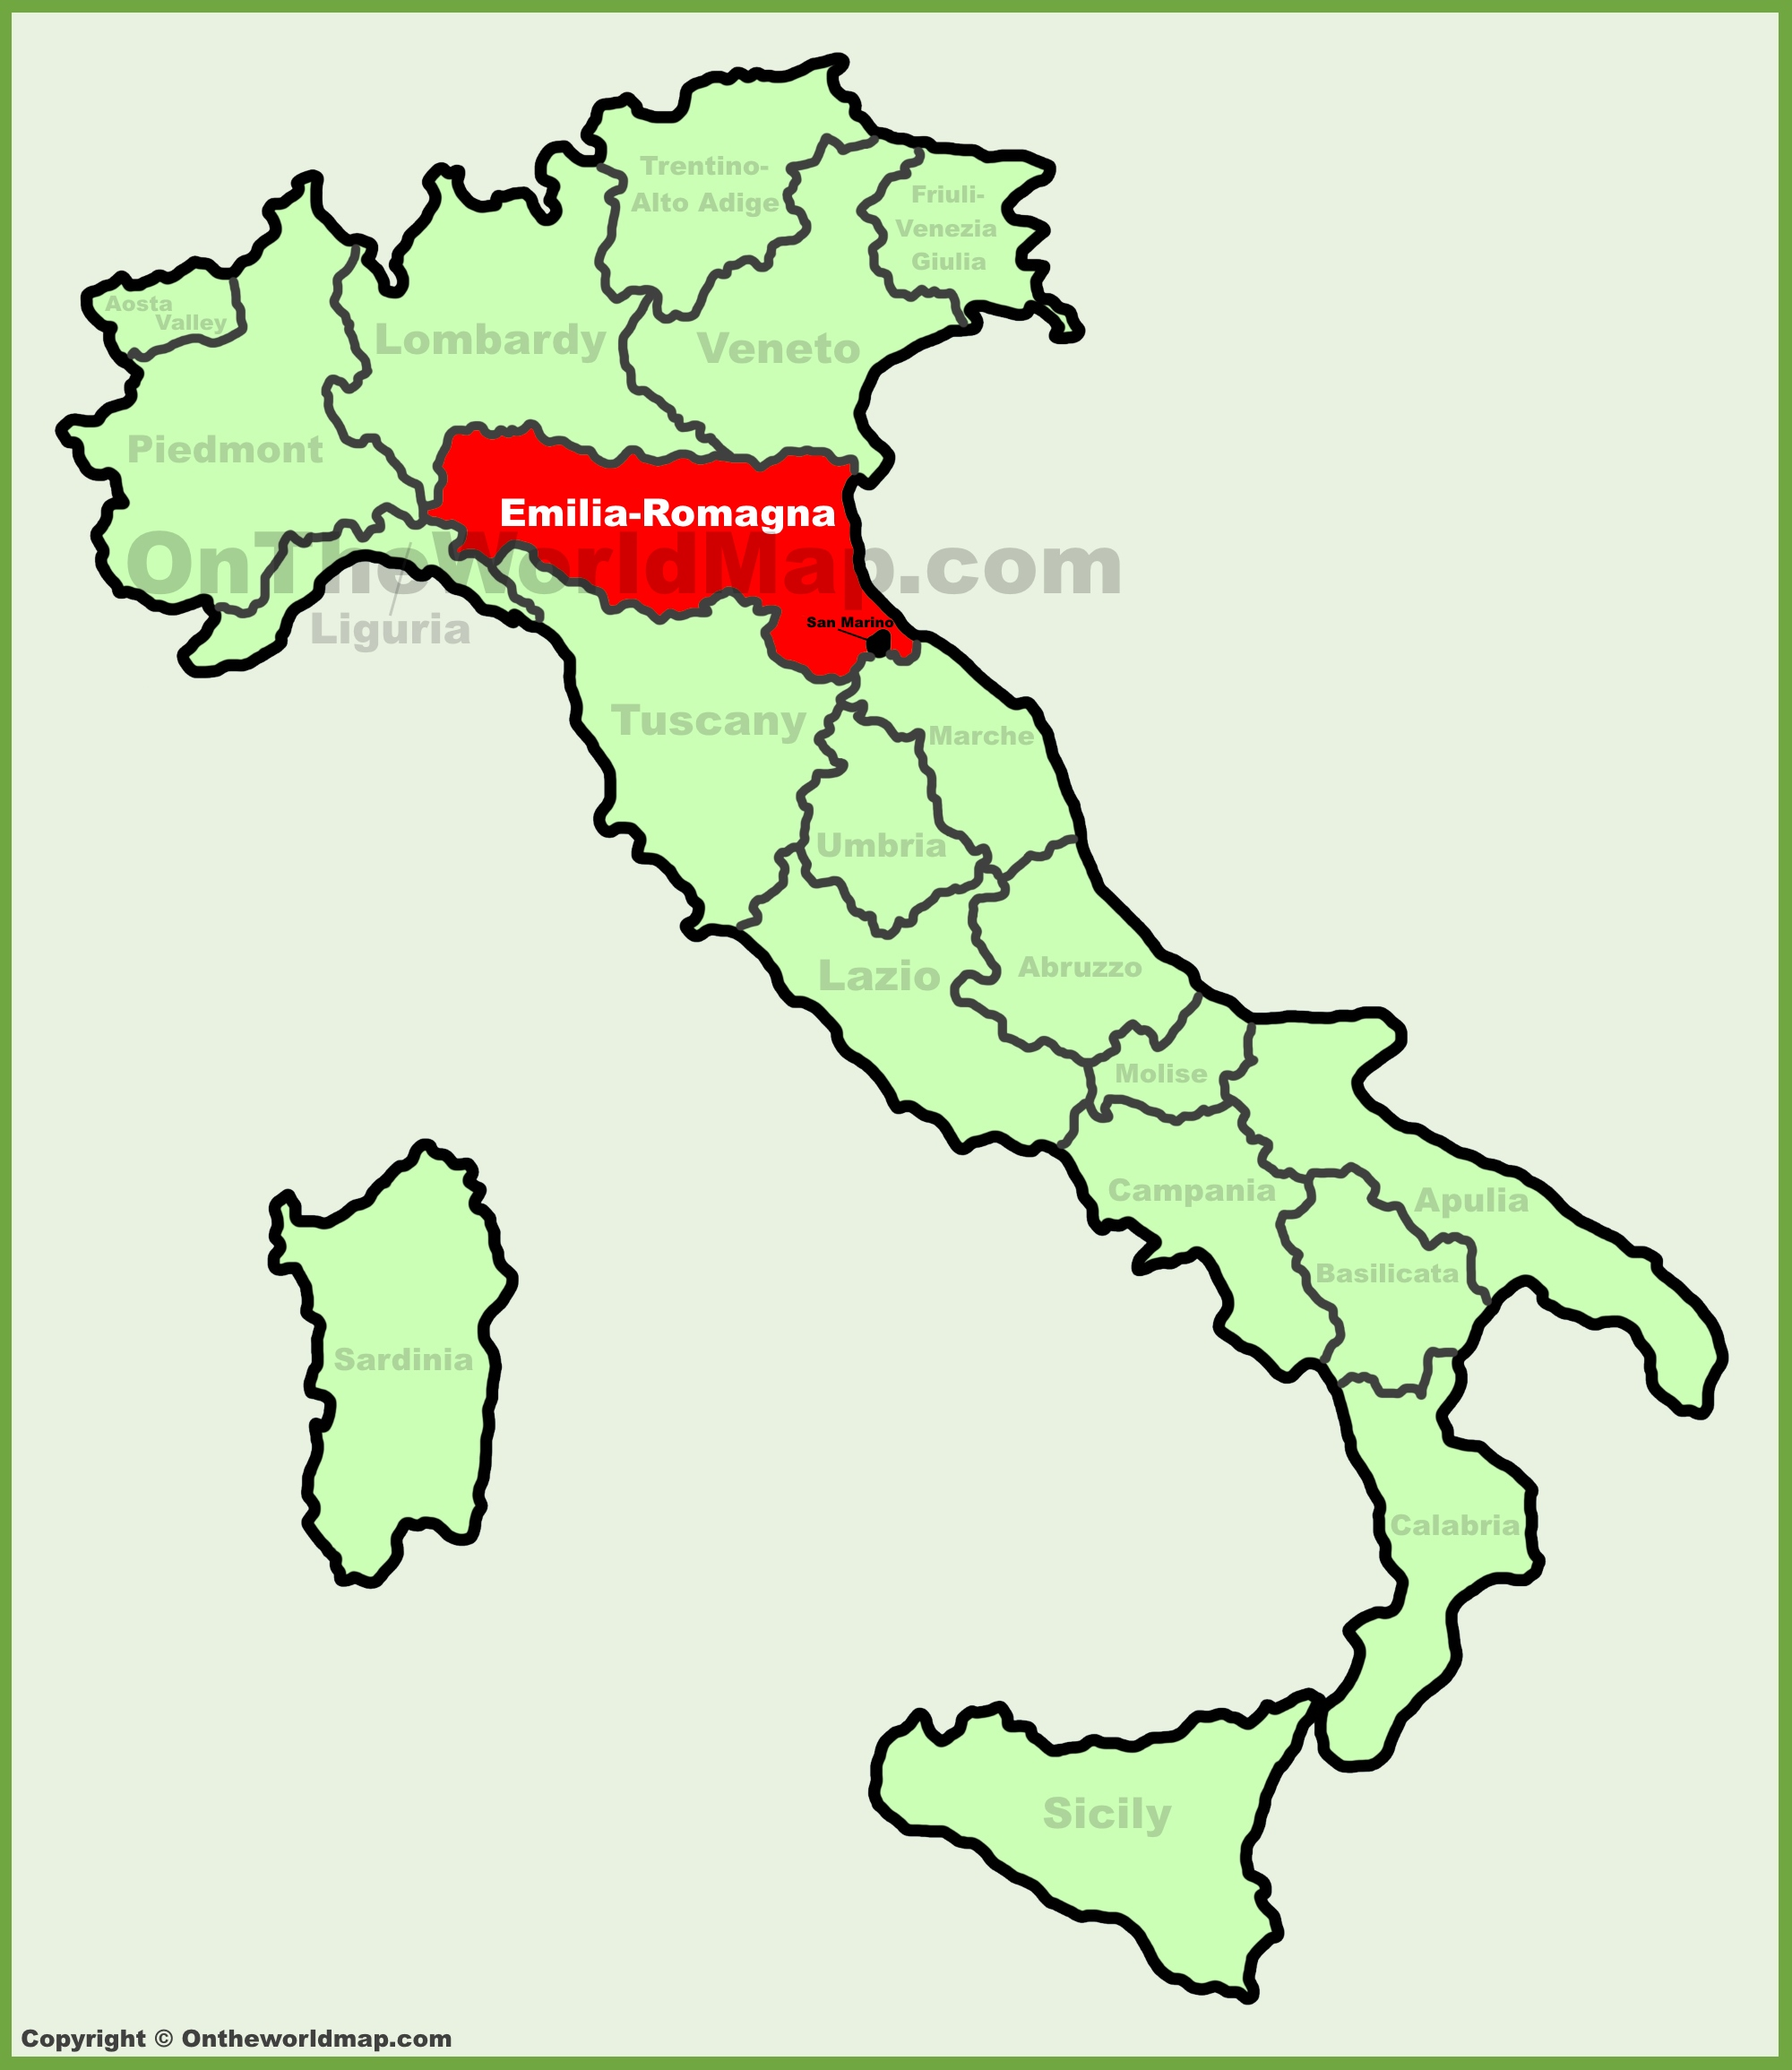 EmiliaRomagna location on the Italy map